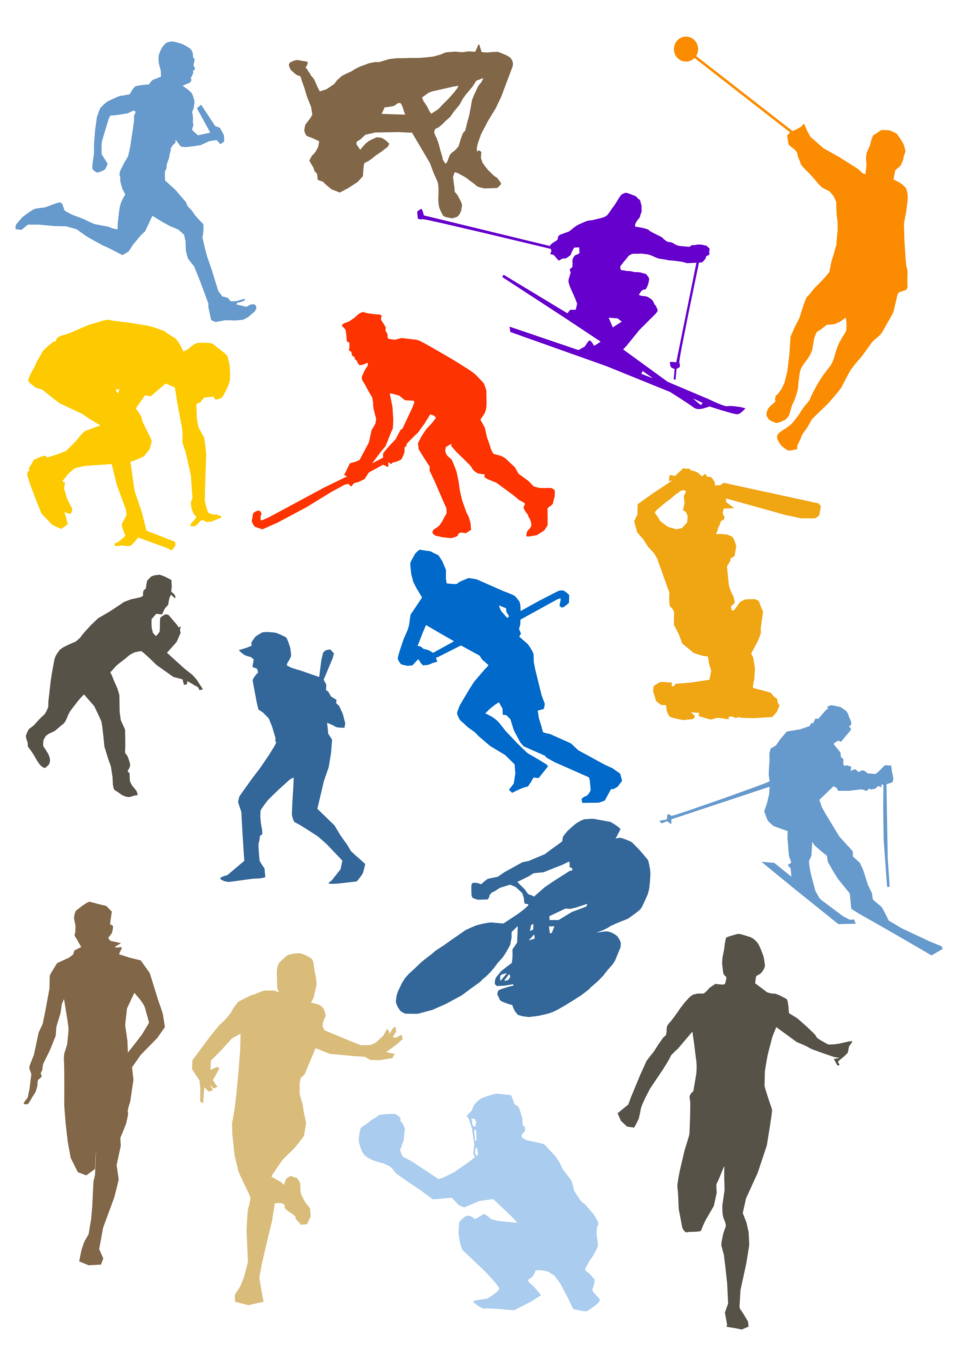 Figures performing various sports activities